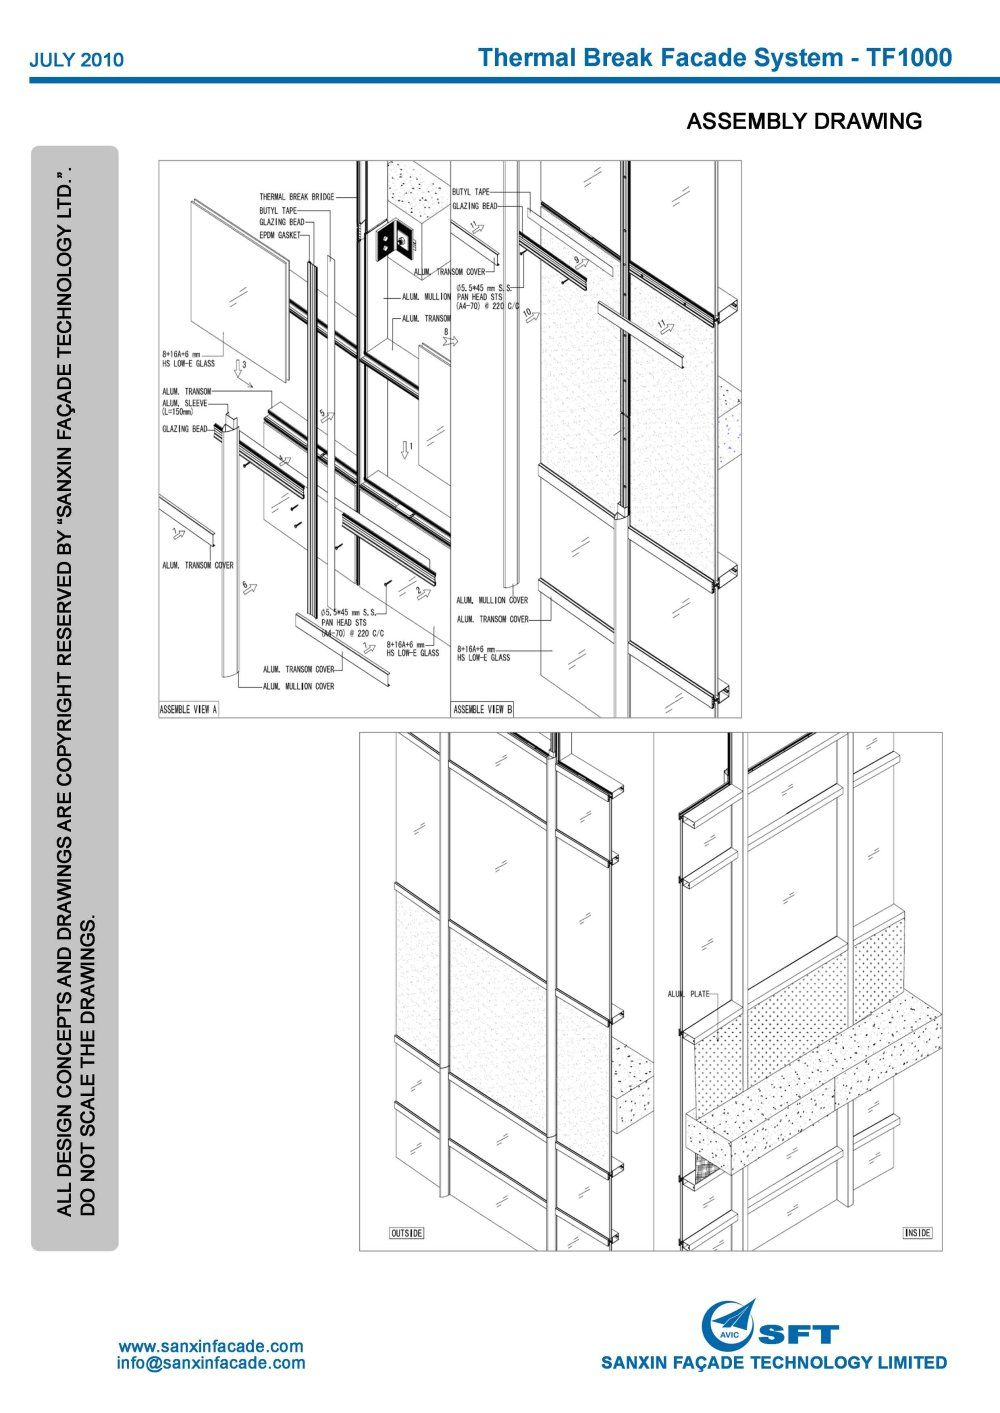 Curtain Walls SystemsStick Curtain Wall System SANXIN FACADE TECHNOLOGY  LIMITED PPR4i0NM